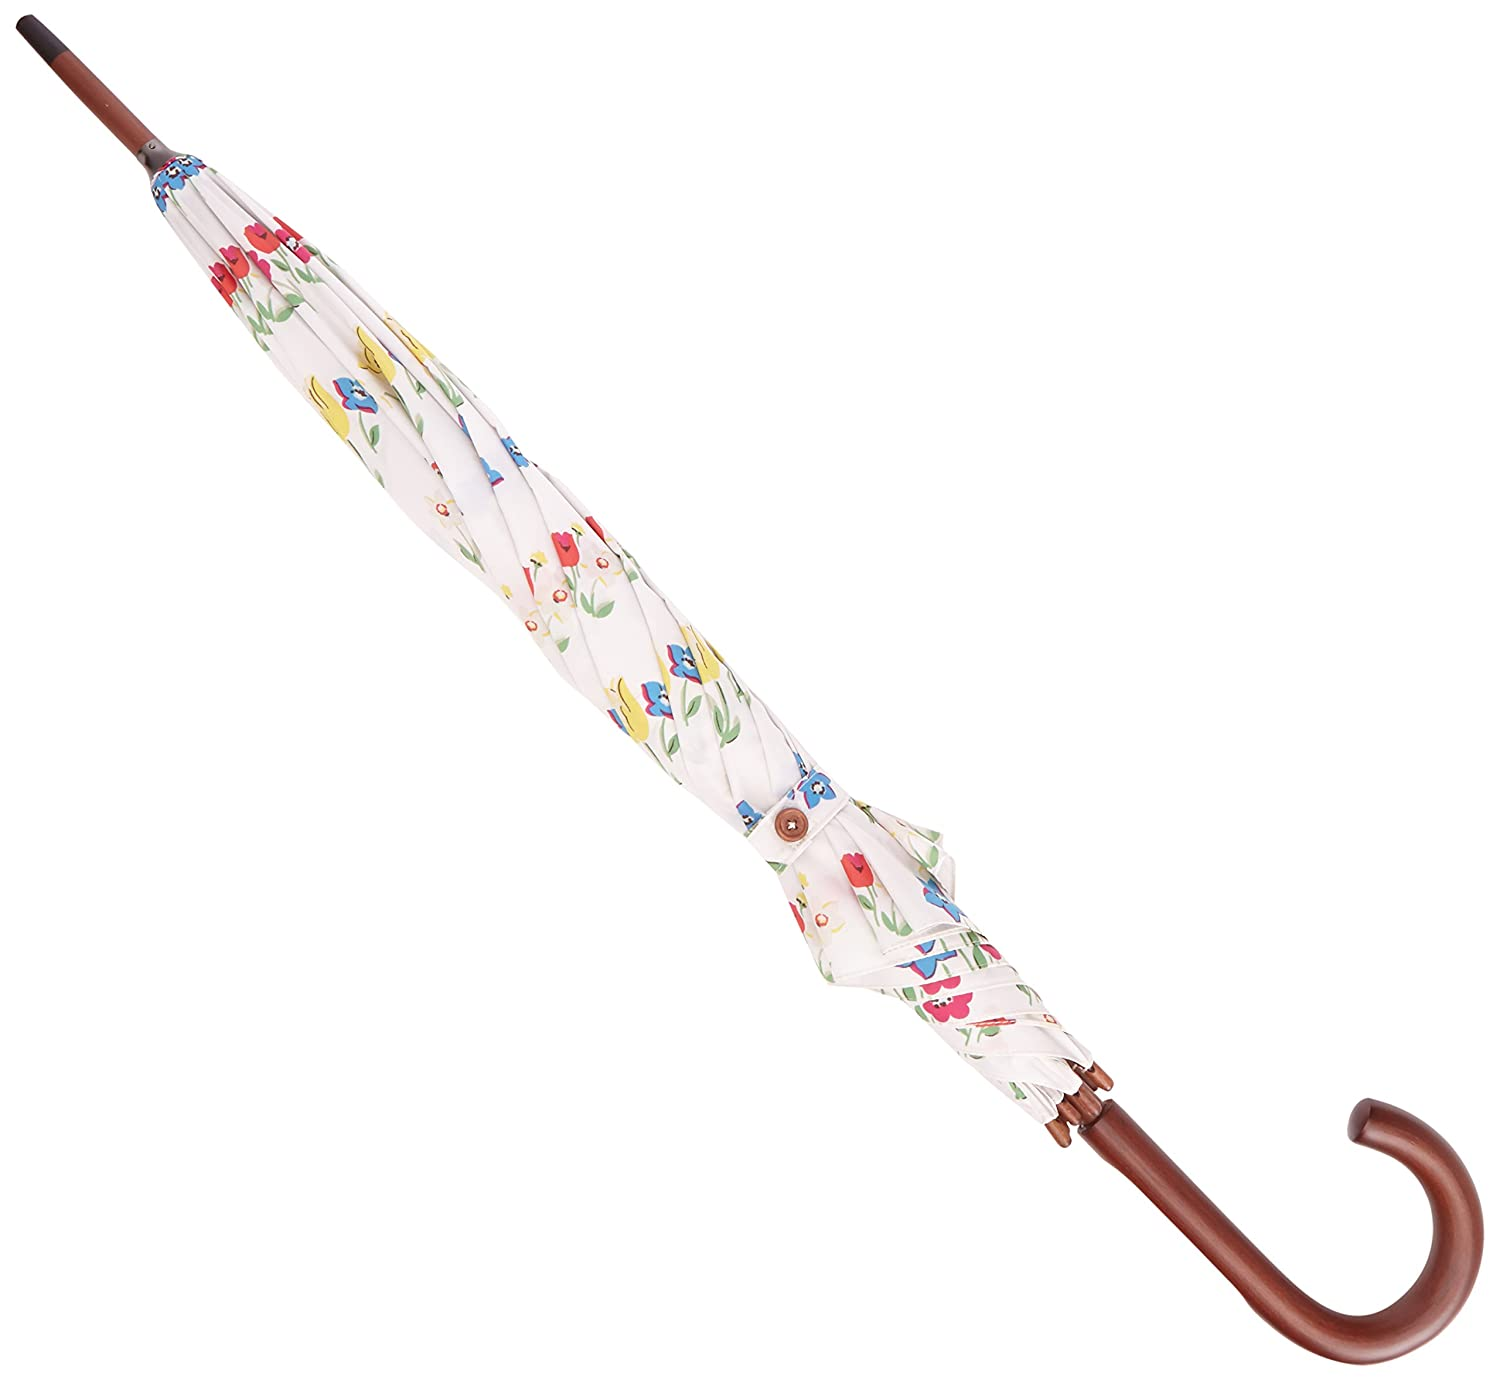 Cath Kidston Kensington 2-Paraguas Mujer, Mehrfarbig - Multicoloured (Paradise Bunch Chalk) (Varios colores) - L541-Paradise Bunch Chalk: Amazon.es: ...